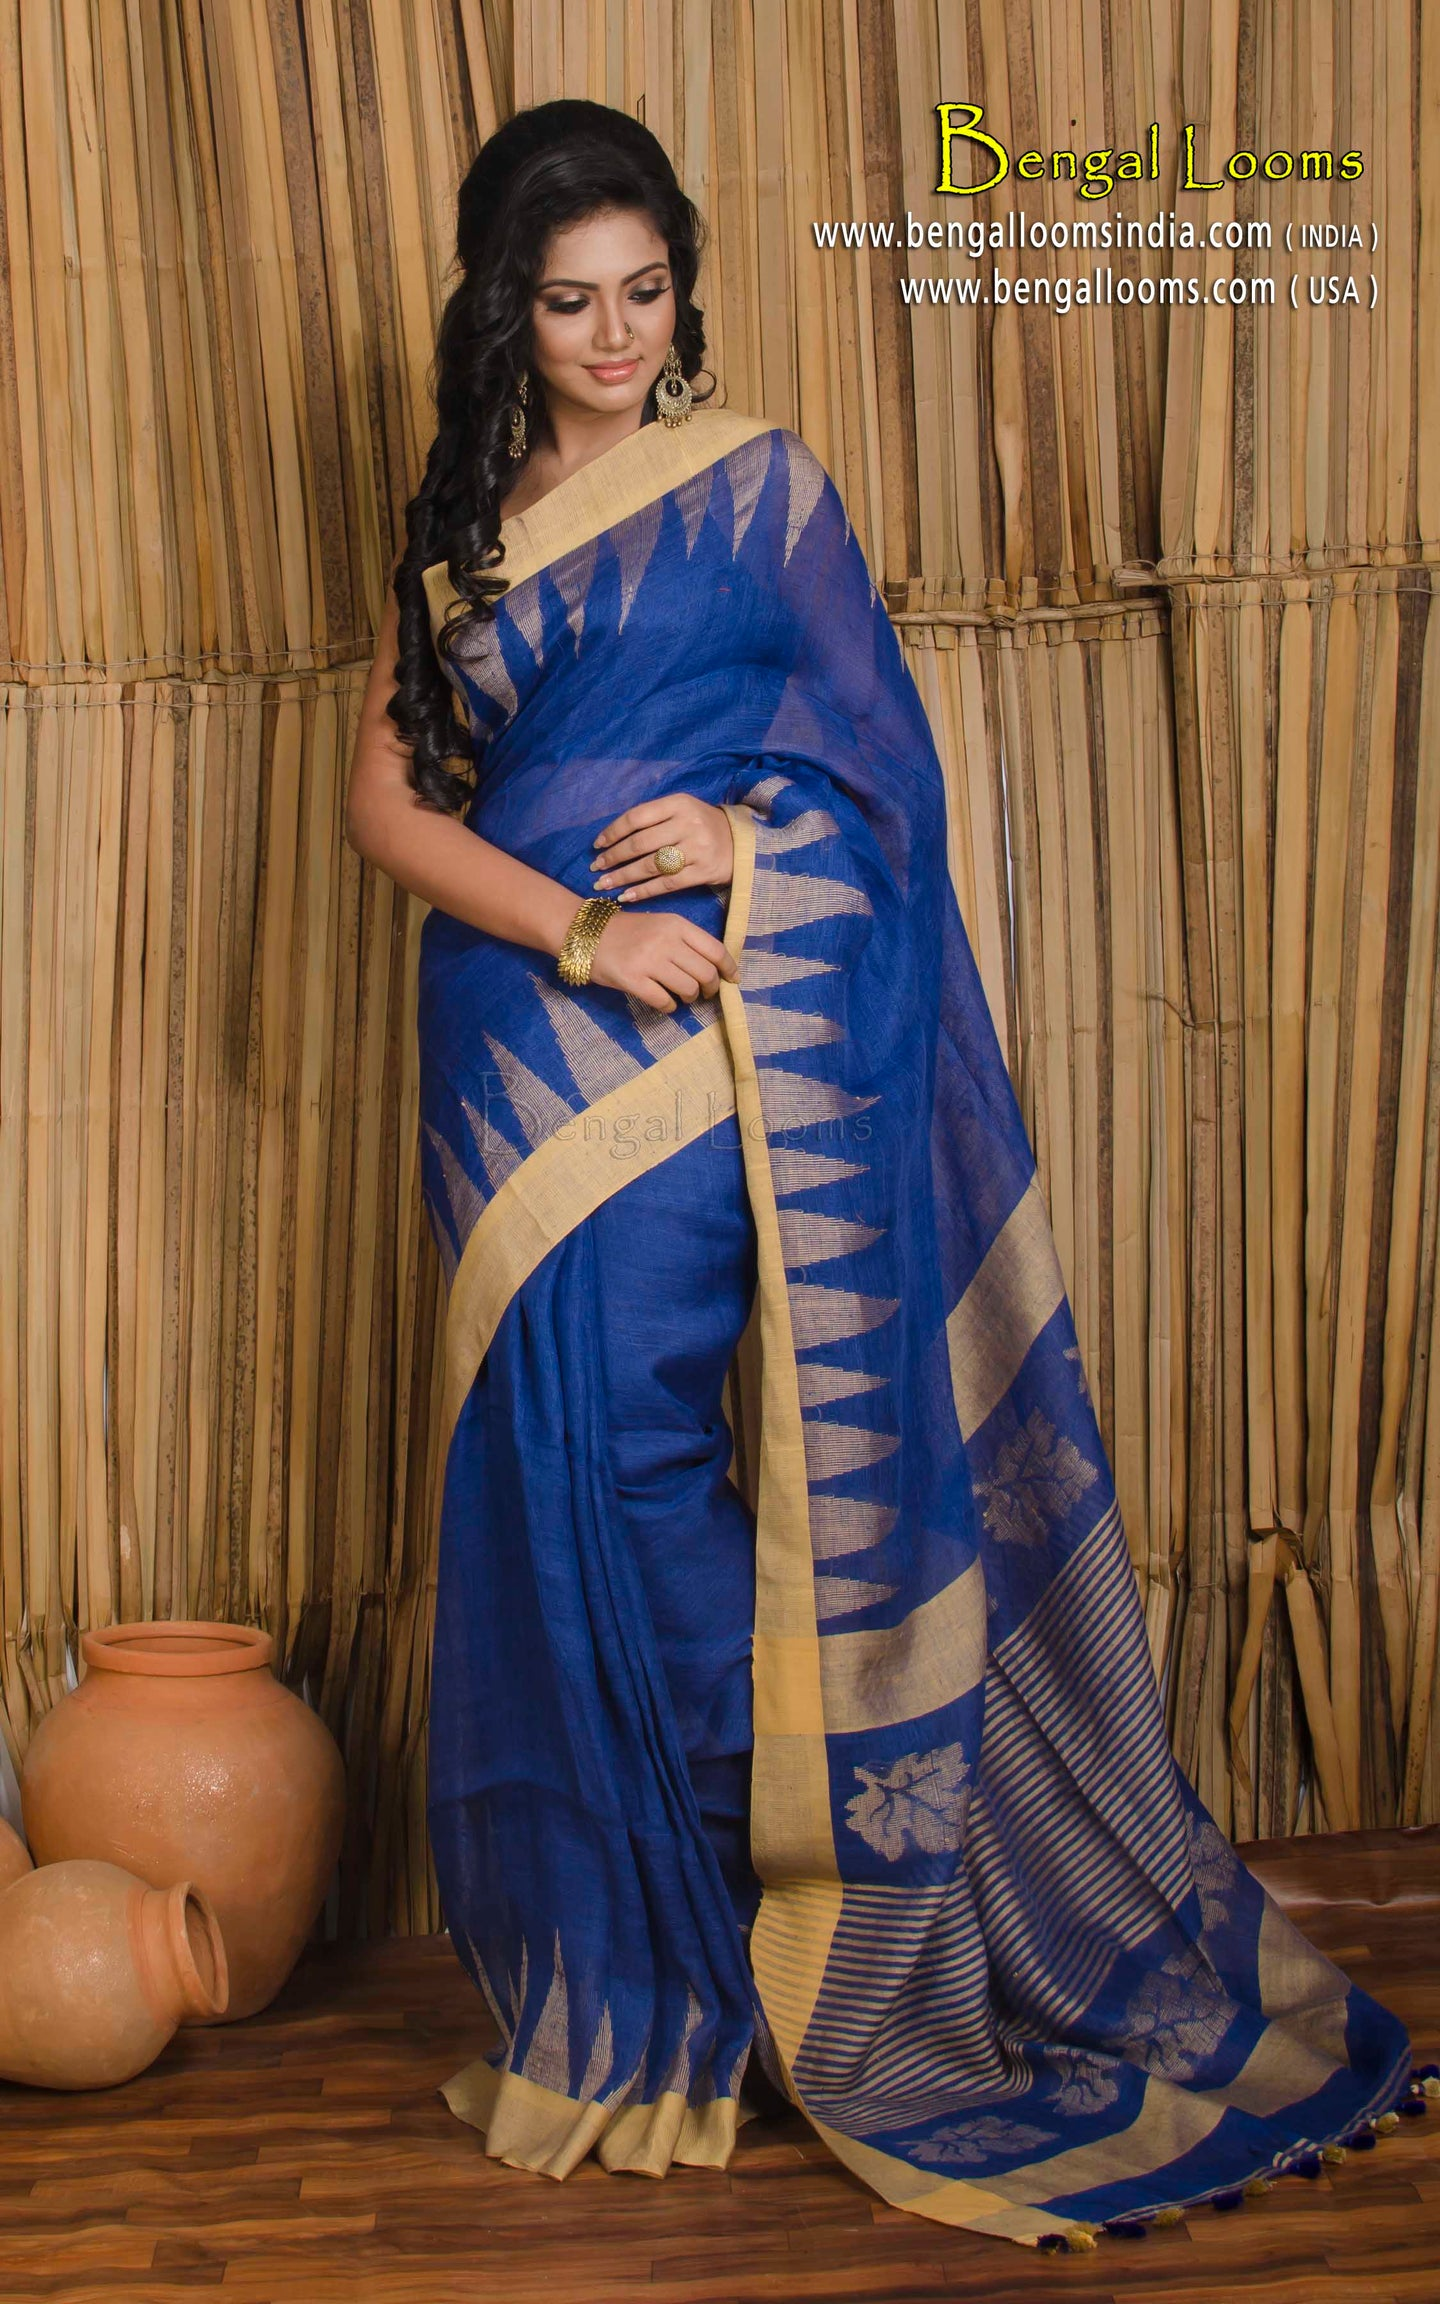 Pure Linen Jamdani Saree in Blue with Temple Border from Bengal Looms India